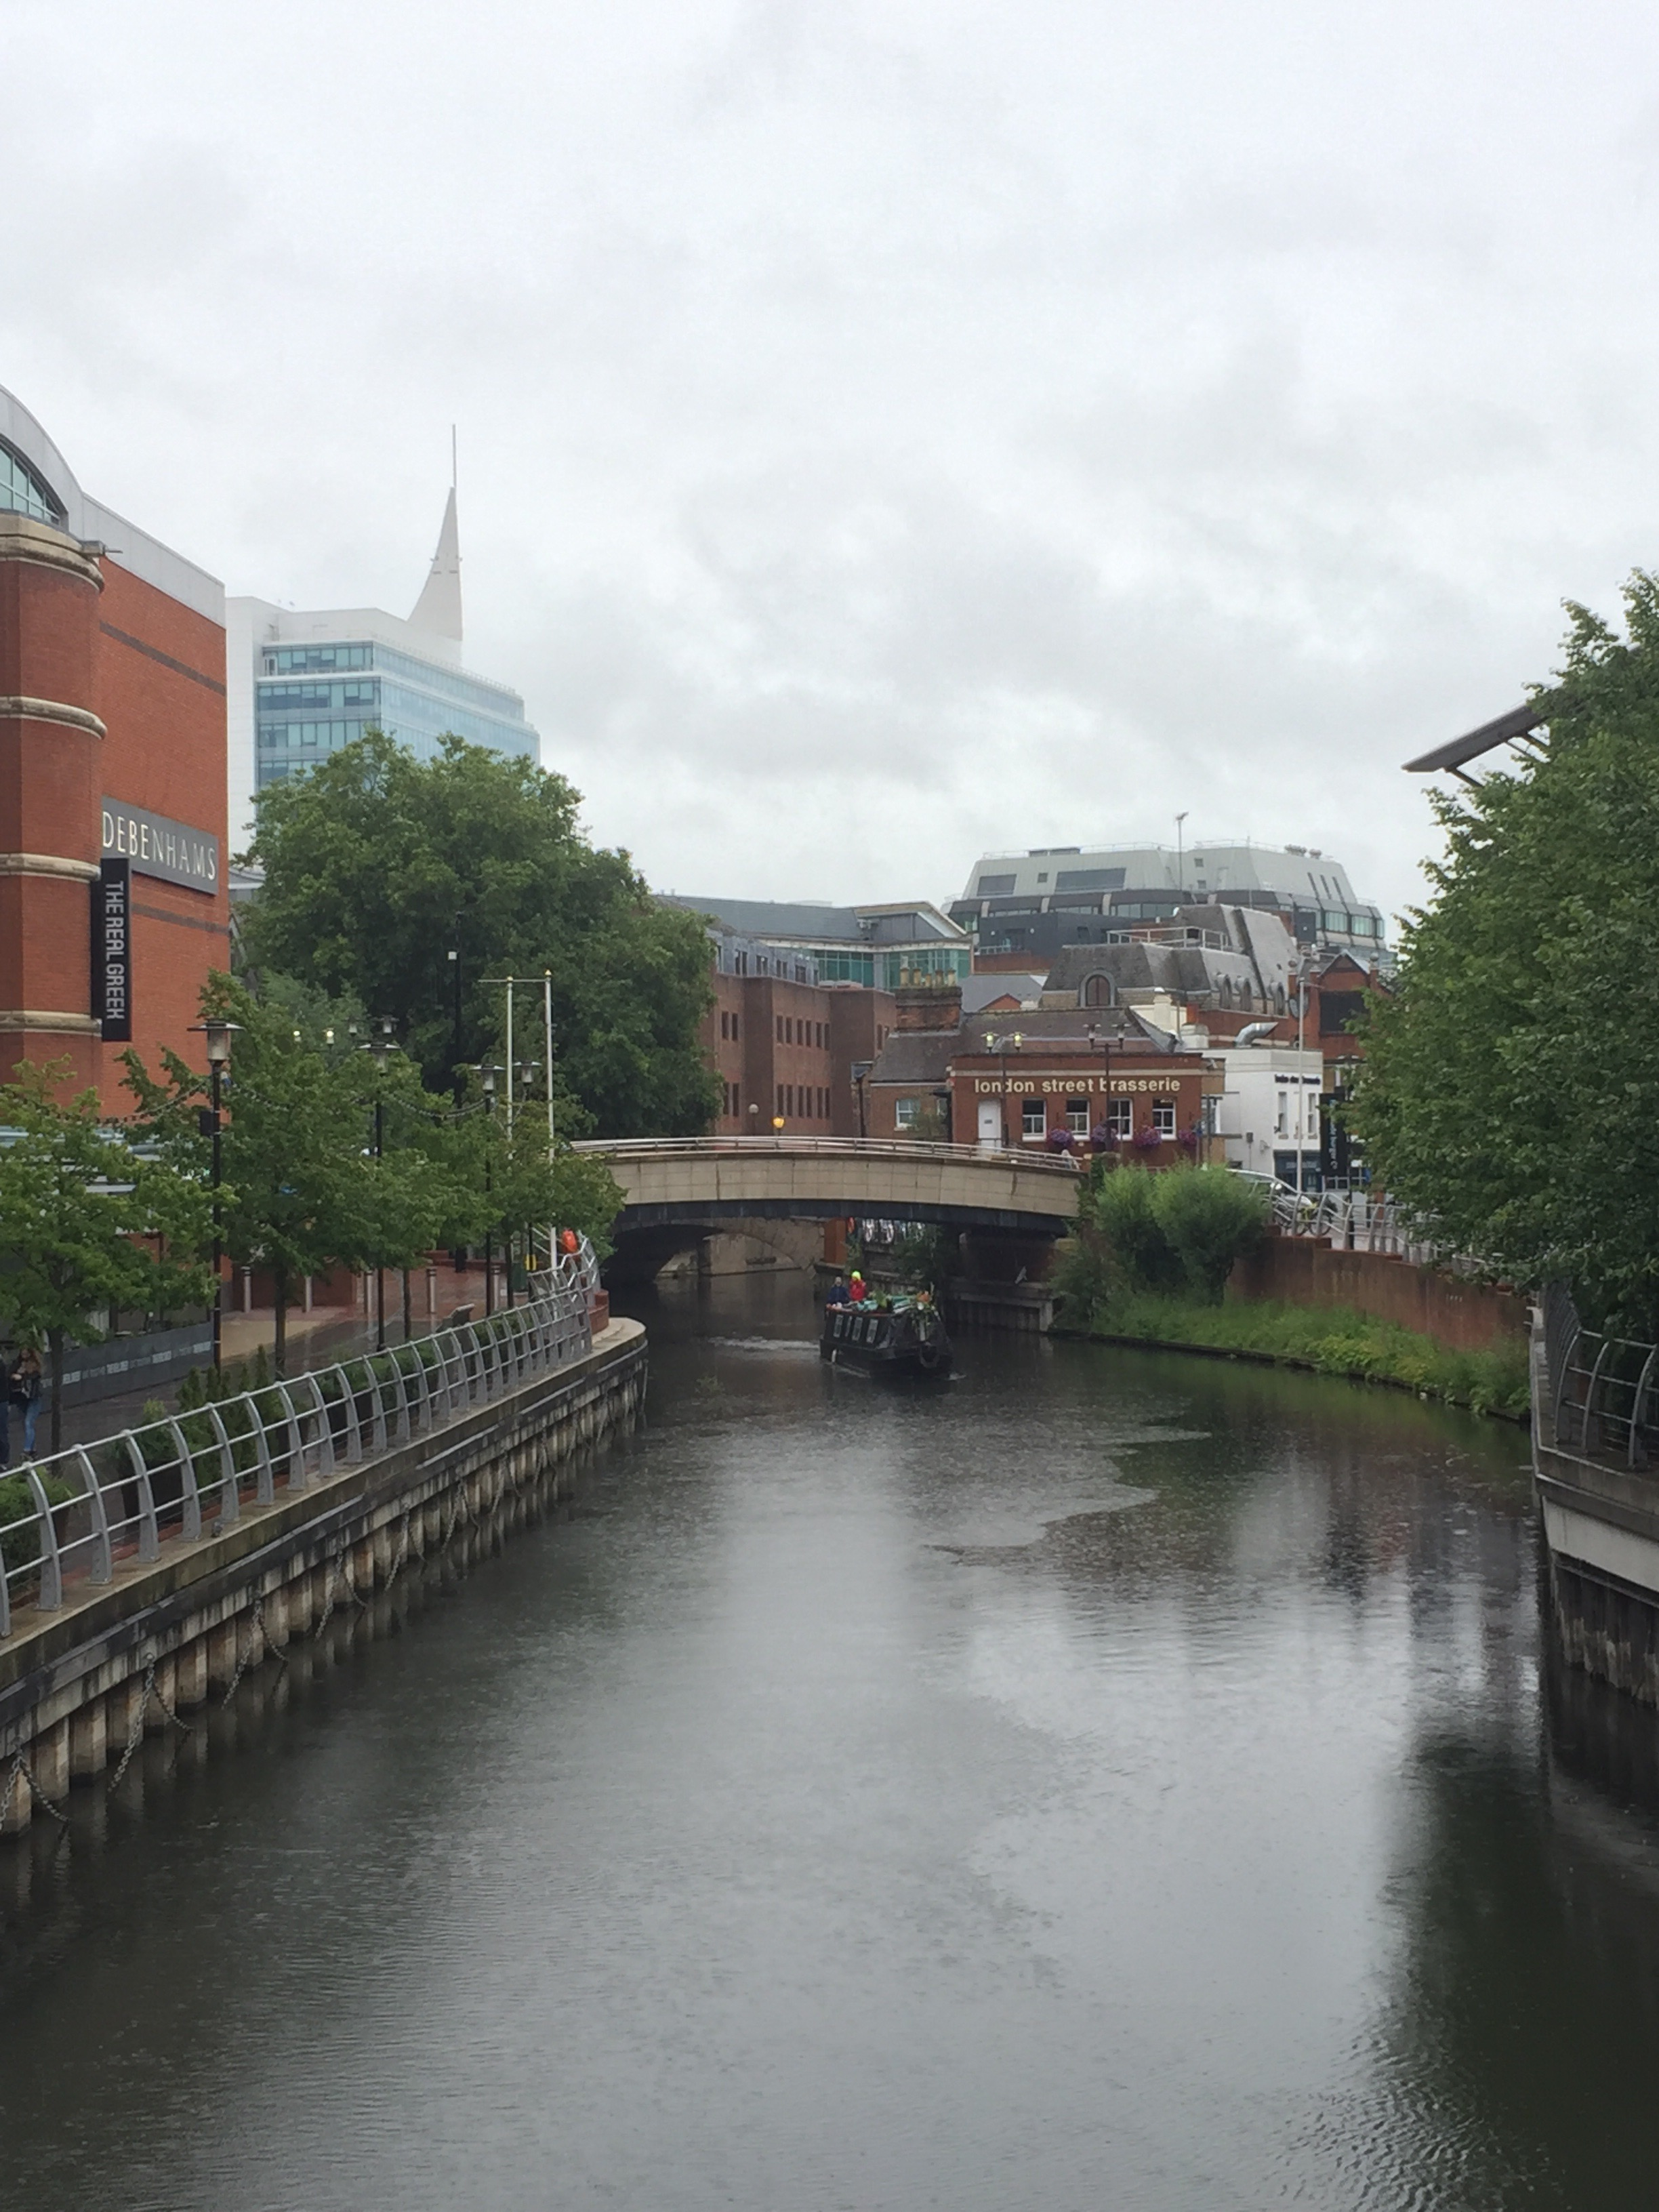 Yesterday The Weather Wasn't Fantastic So We Headed Into Reading Town  Centre For A Lovely Lunch And Cinema Trip For The Little Postcards And  Their Friends